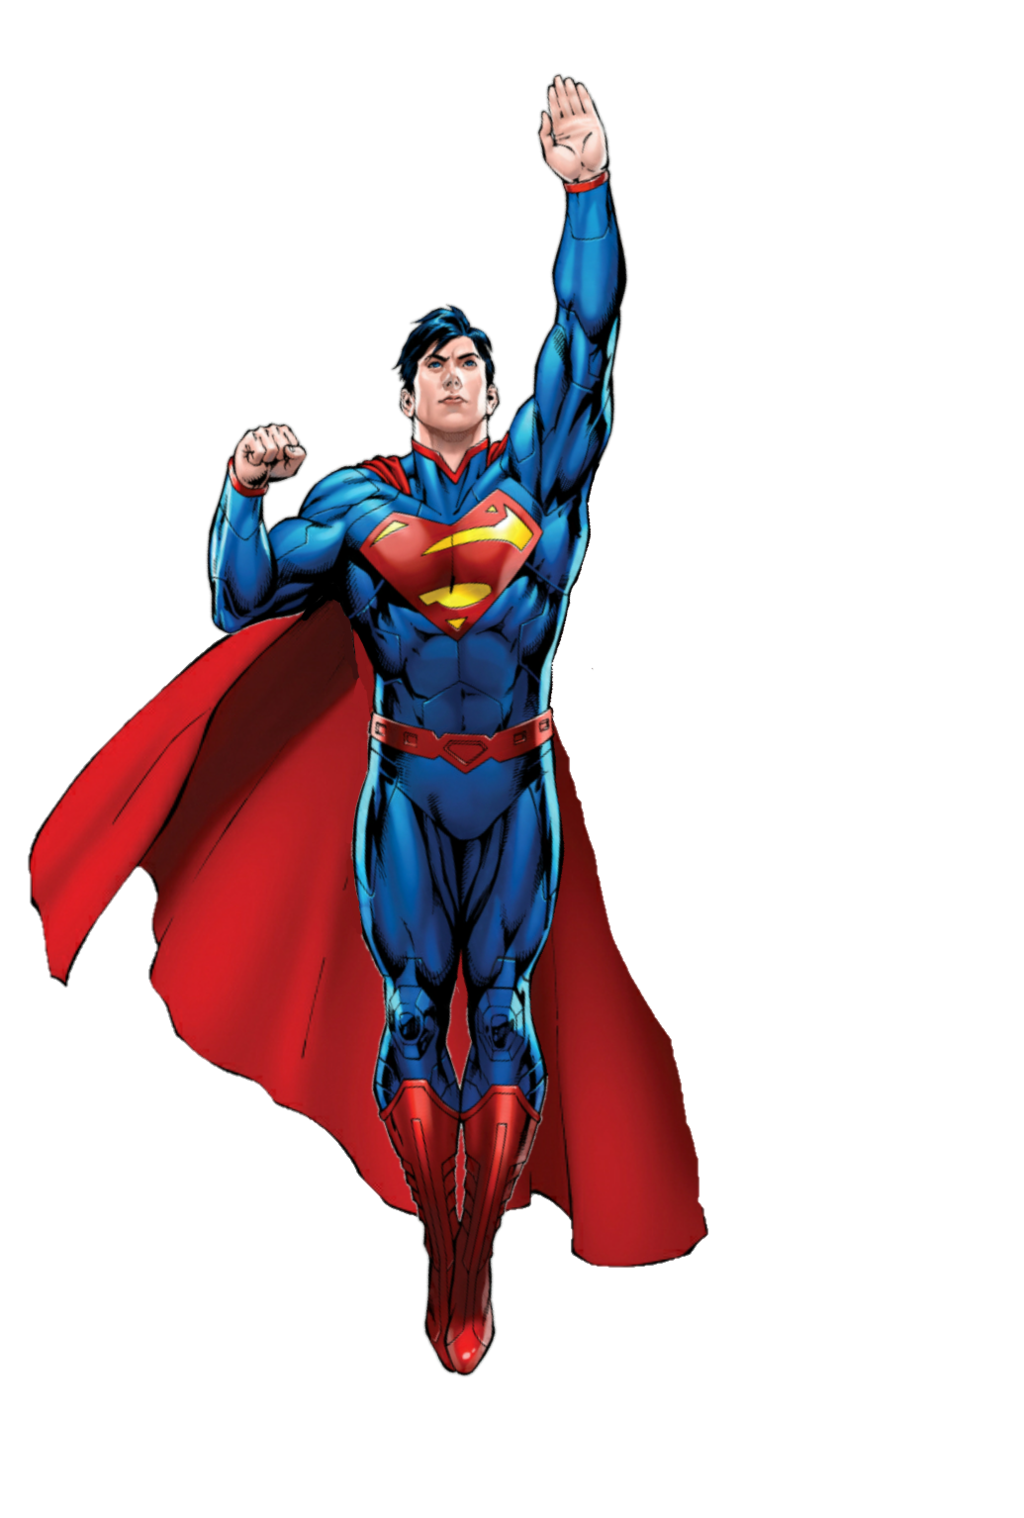 Superman Png Transparent Superman Png Images Pluspng